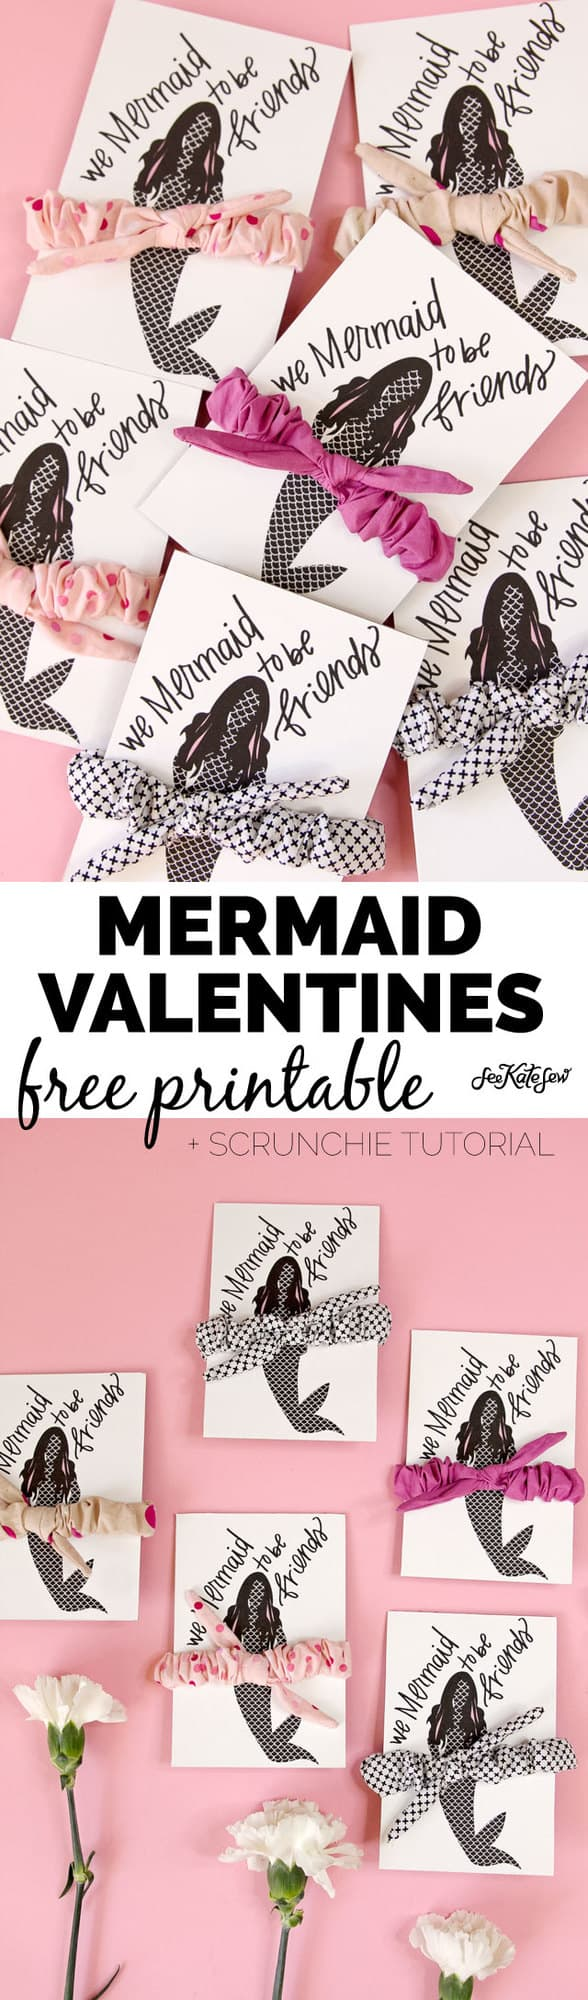 We Mermaid to Be Friends | valentine ideas and diy knotted scrunchie tutorial | fun valentine ideas | diy valentines | how to make a scrunchie | diy scrunchie | handmade scrunchie tutorial || See Kate Sew #scrunchietutorial #diyscrunchie #handmadescrunchie